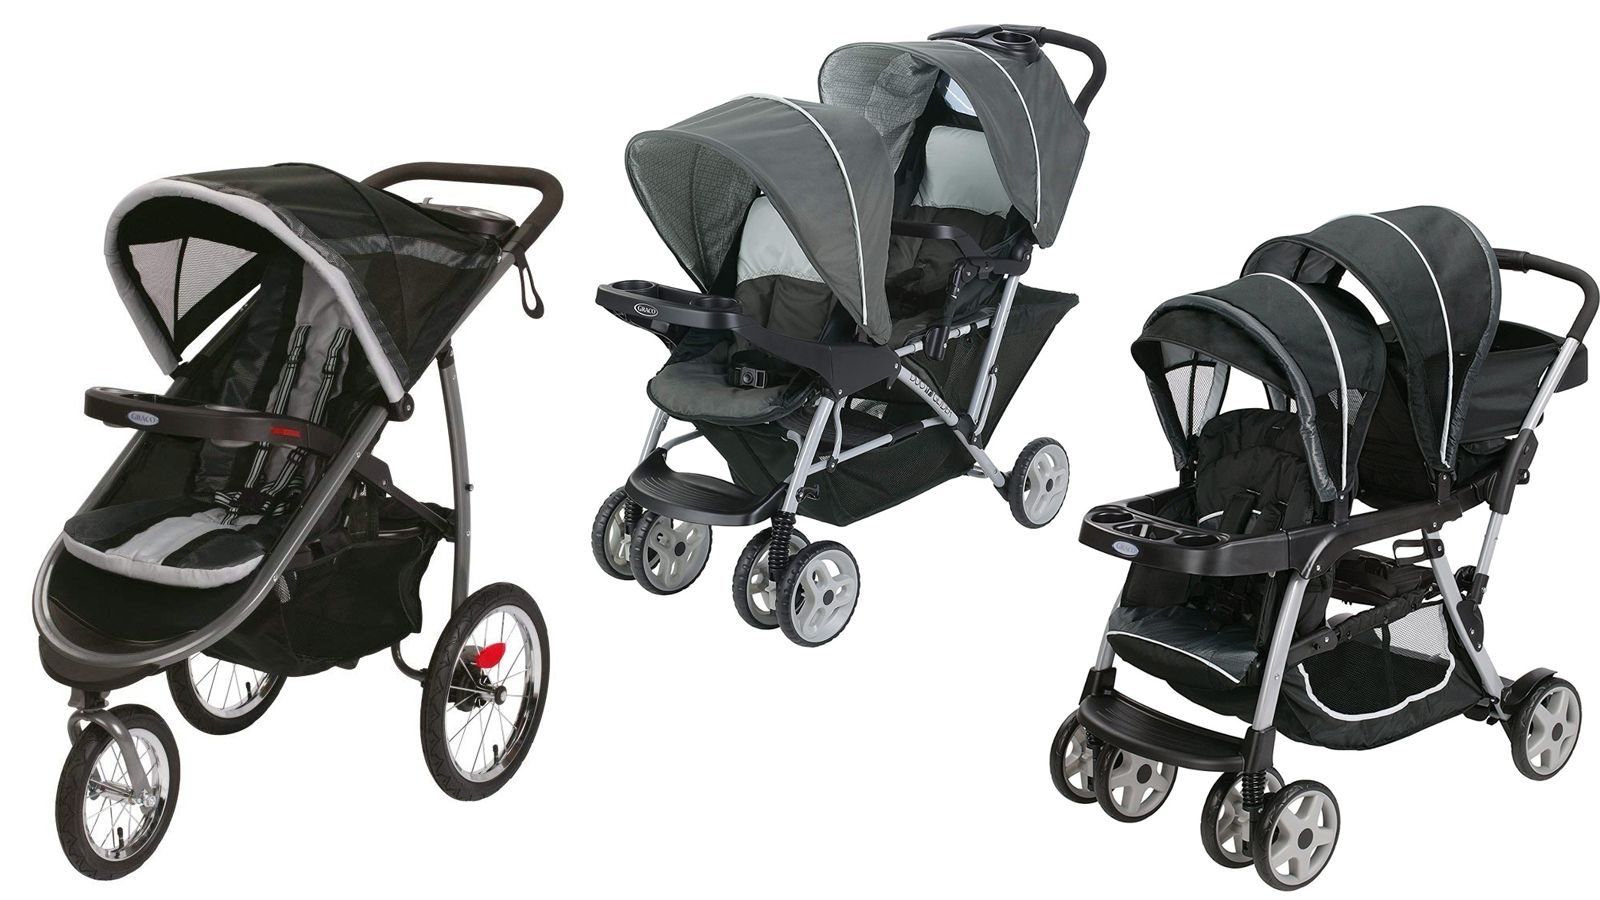 Graco Stroller Replacement Parts Canada | Reviewmotors.co